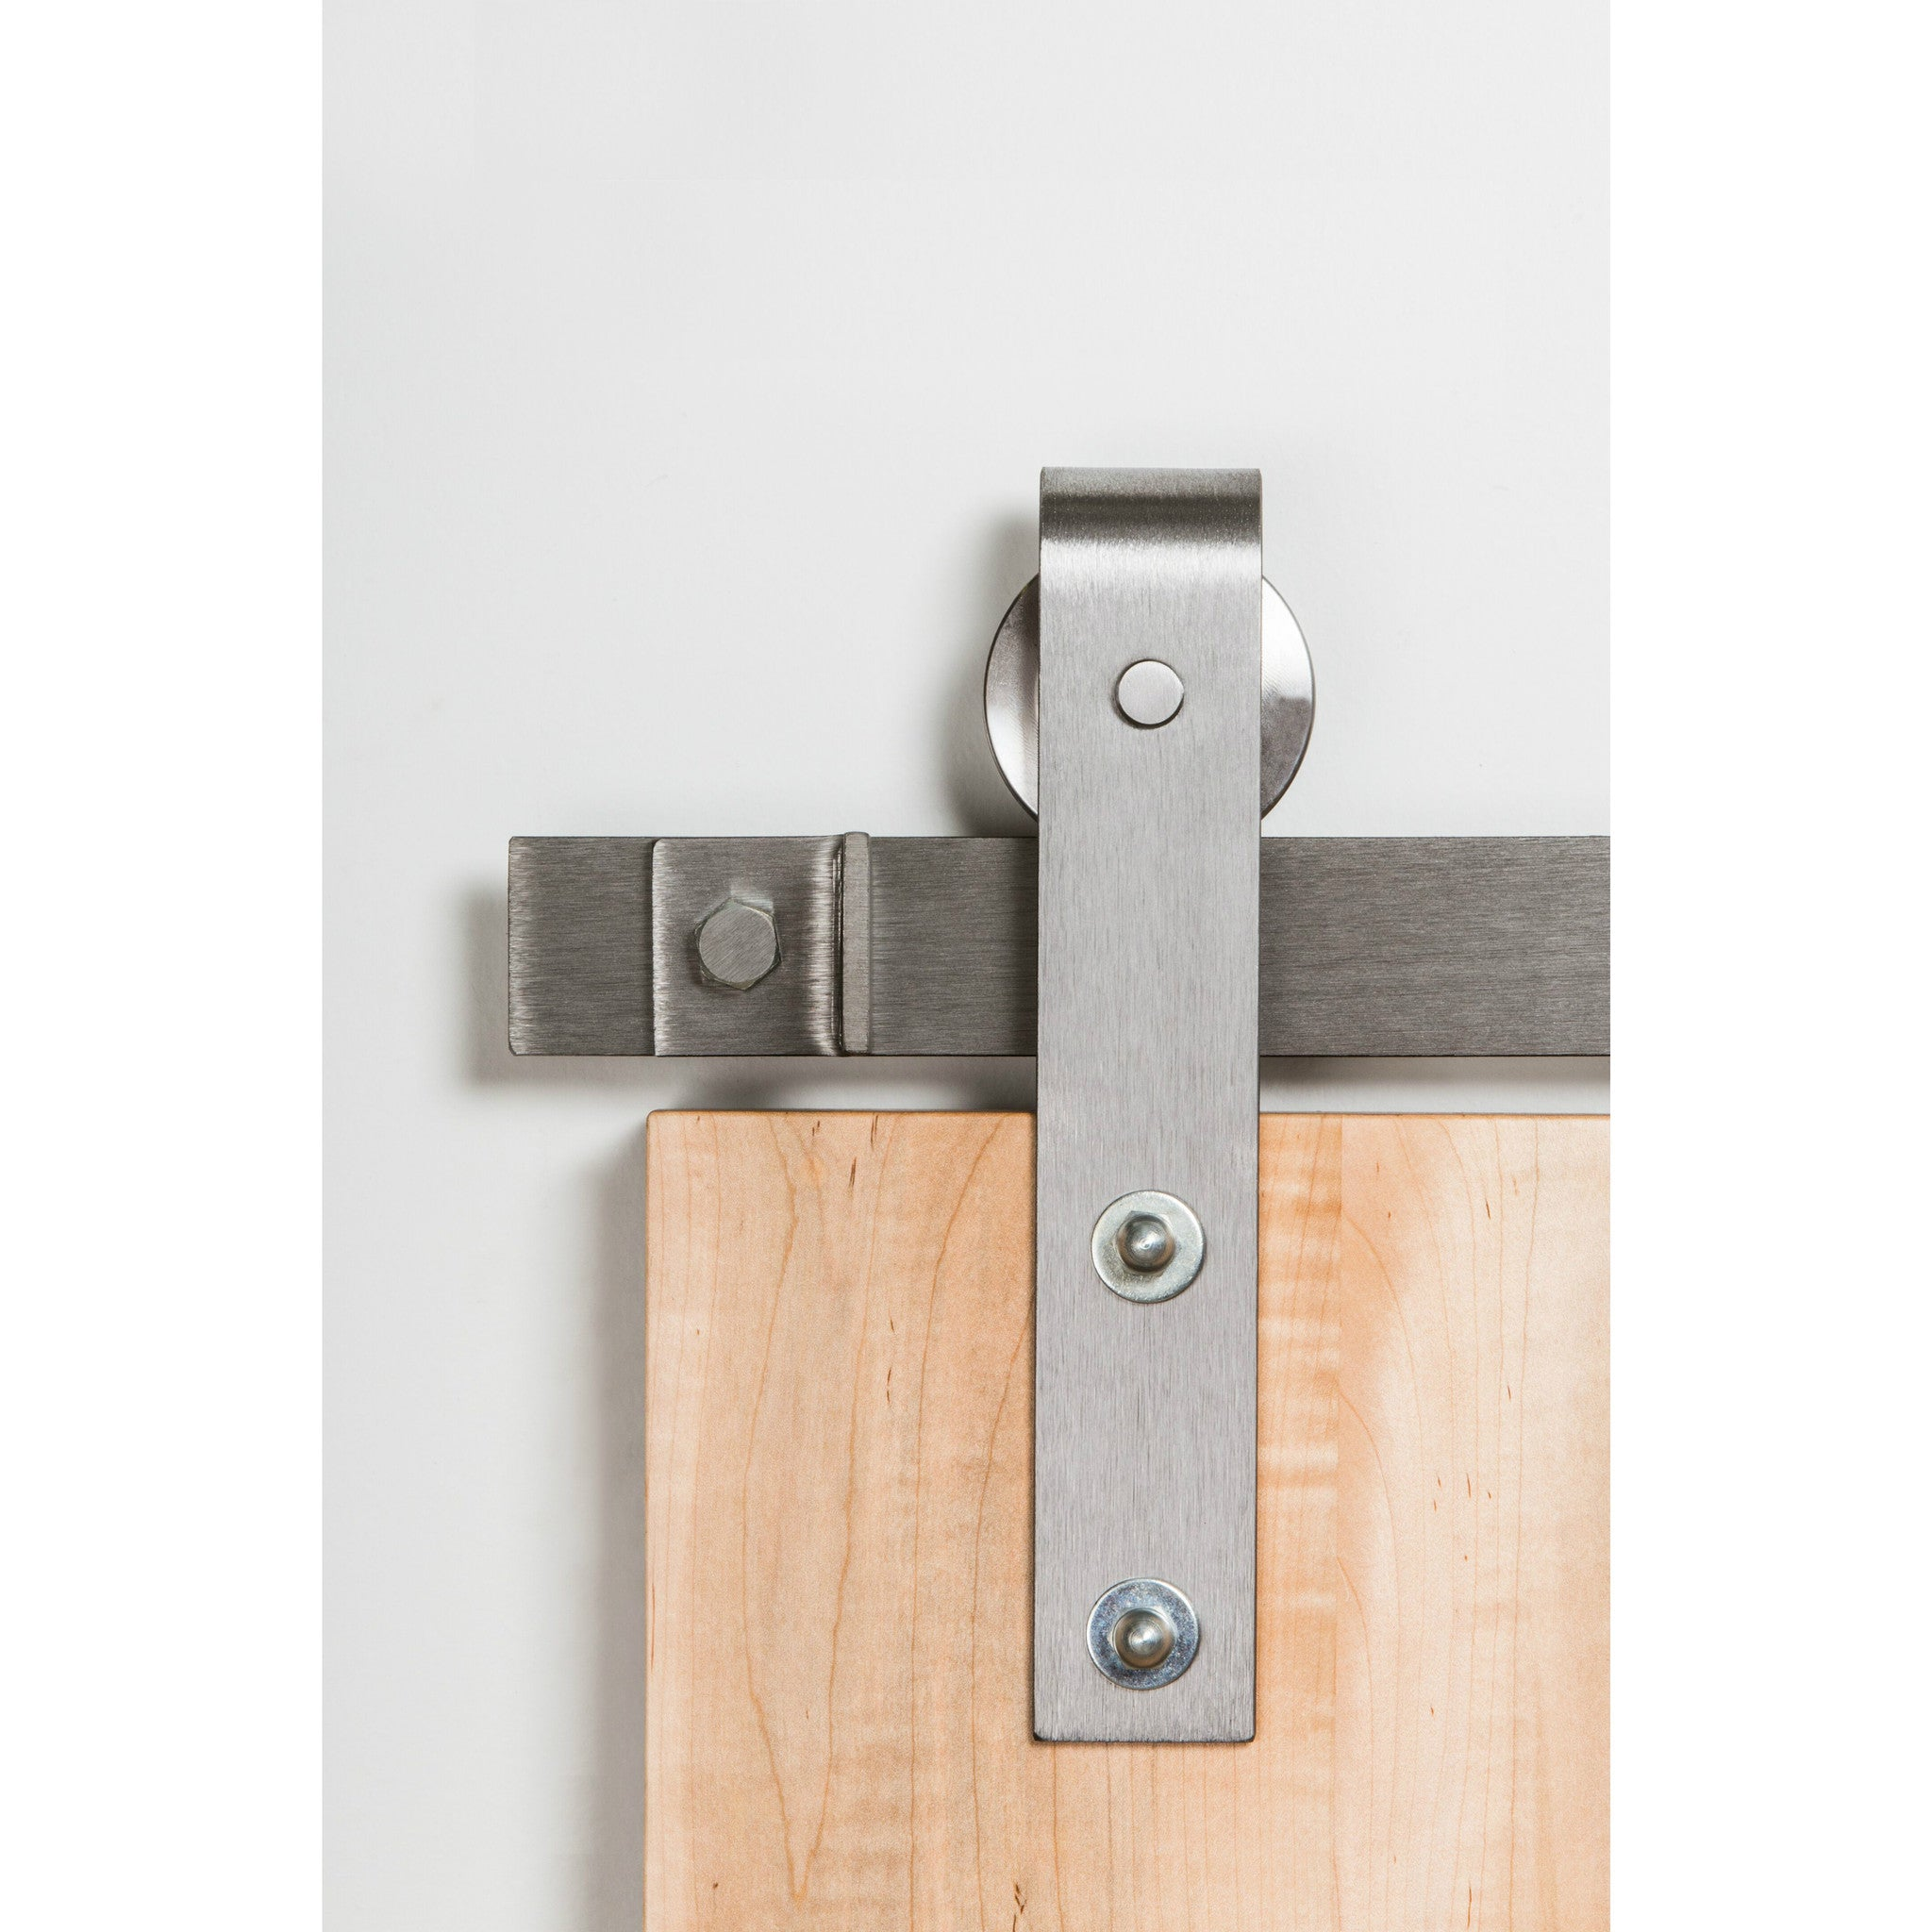 leatherneck kit hangers barns track door hardware with brushed nickel products barnware flat barn kits straight doors